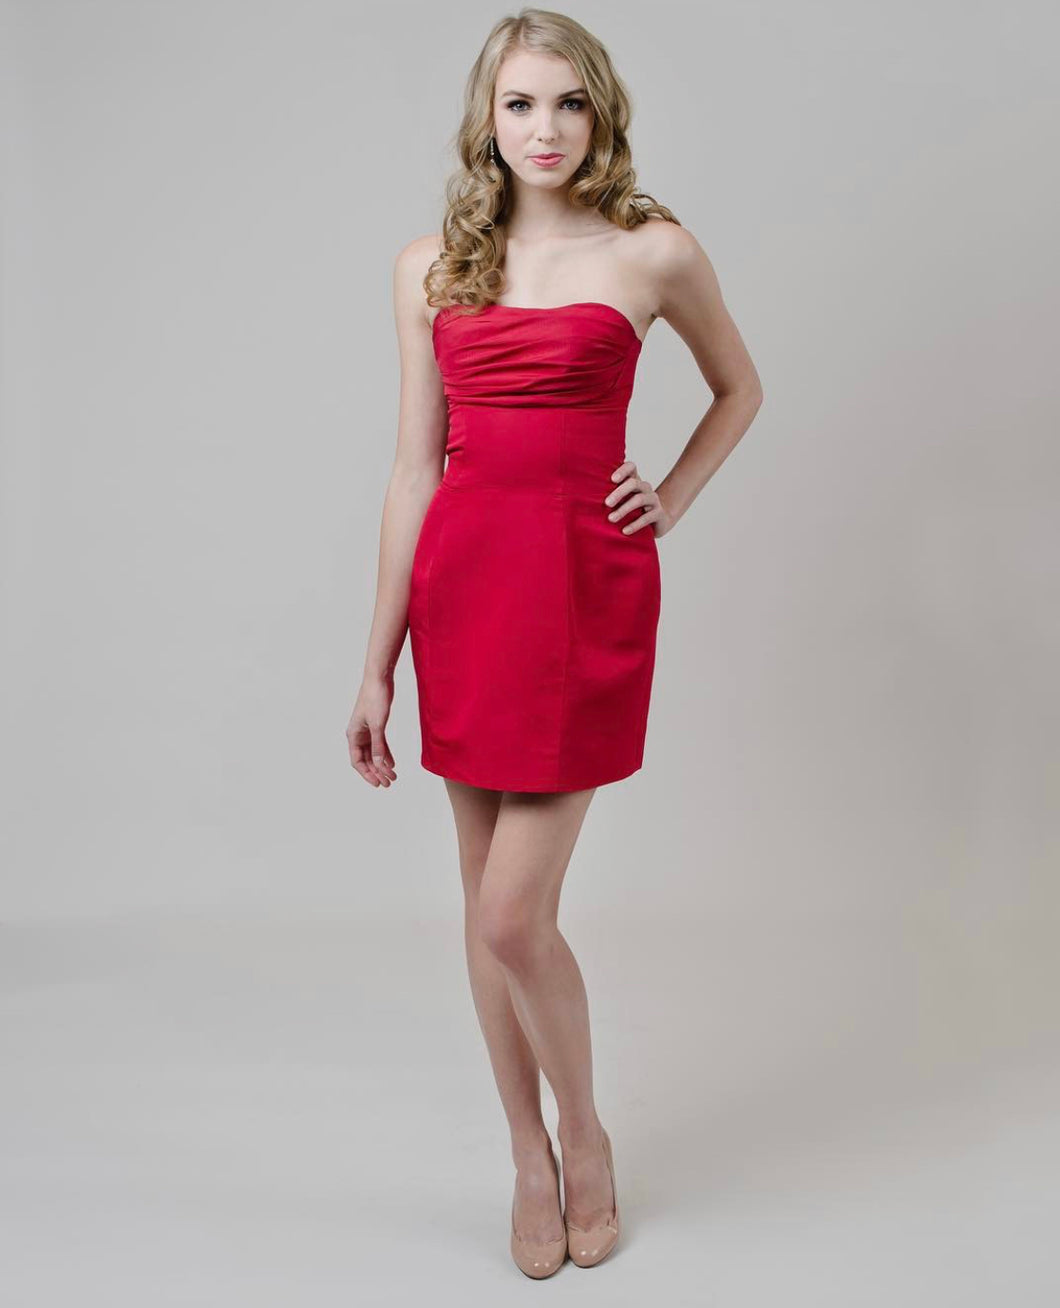 Lipstick Red Cocktail Dress